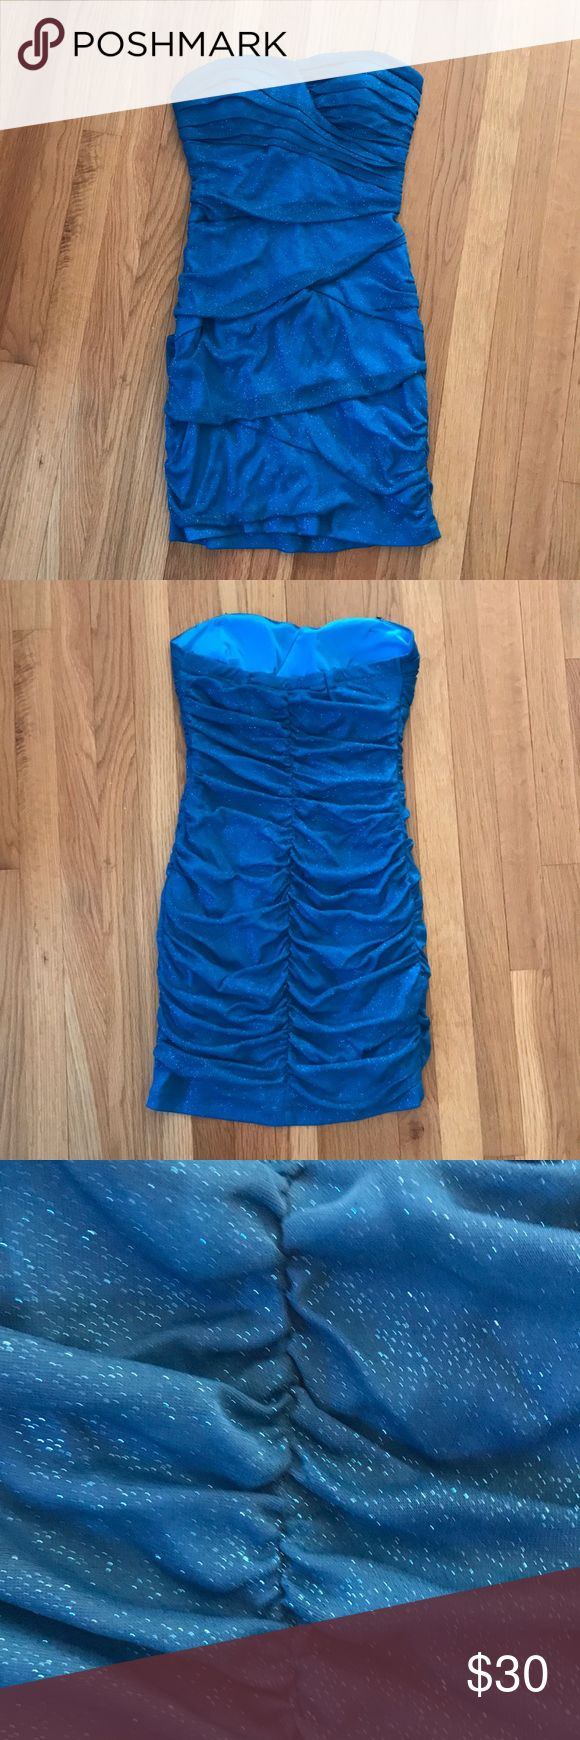 Semi formal dress Fitted, sparkly semi formal dress that will make your shine. Perfect for dances, weddings, and other semi formal parties. Soft and hugs the body comfortably while accentuating the curves of the body. No zipper. City Triangles Dresses Midi